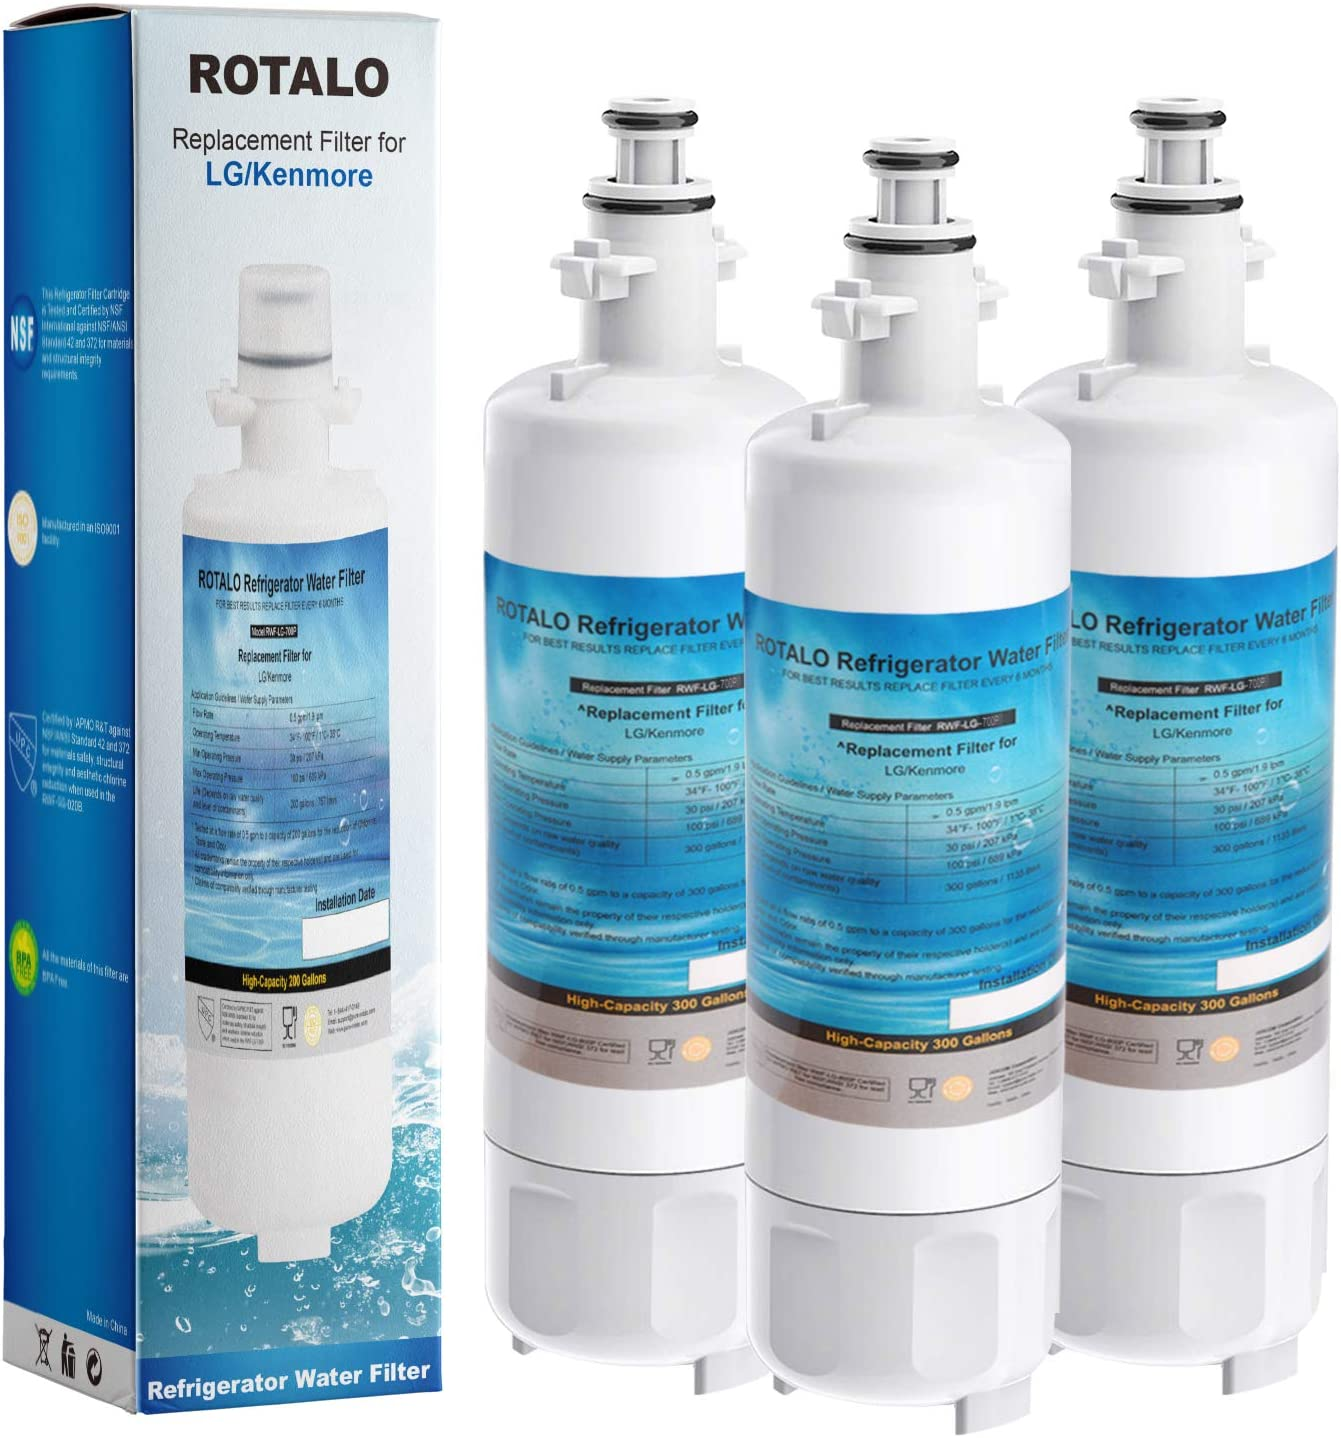 LG LT700P & Kenmore 9690 Refrigerator Water Filter ROTALO NSF42 & 372 Certified Water Filter Replacement Compatible with LG LT700P ADQ36006101 Kenmore 9690 Other Compatible LG Models (3 Pack)